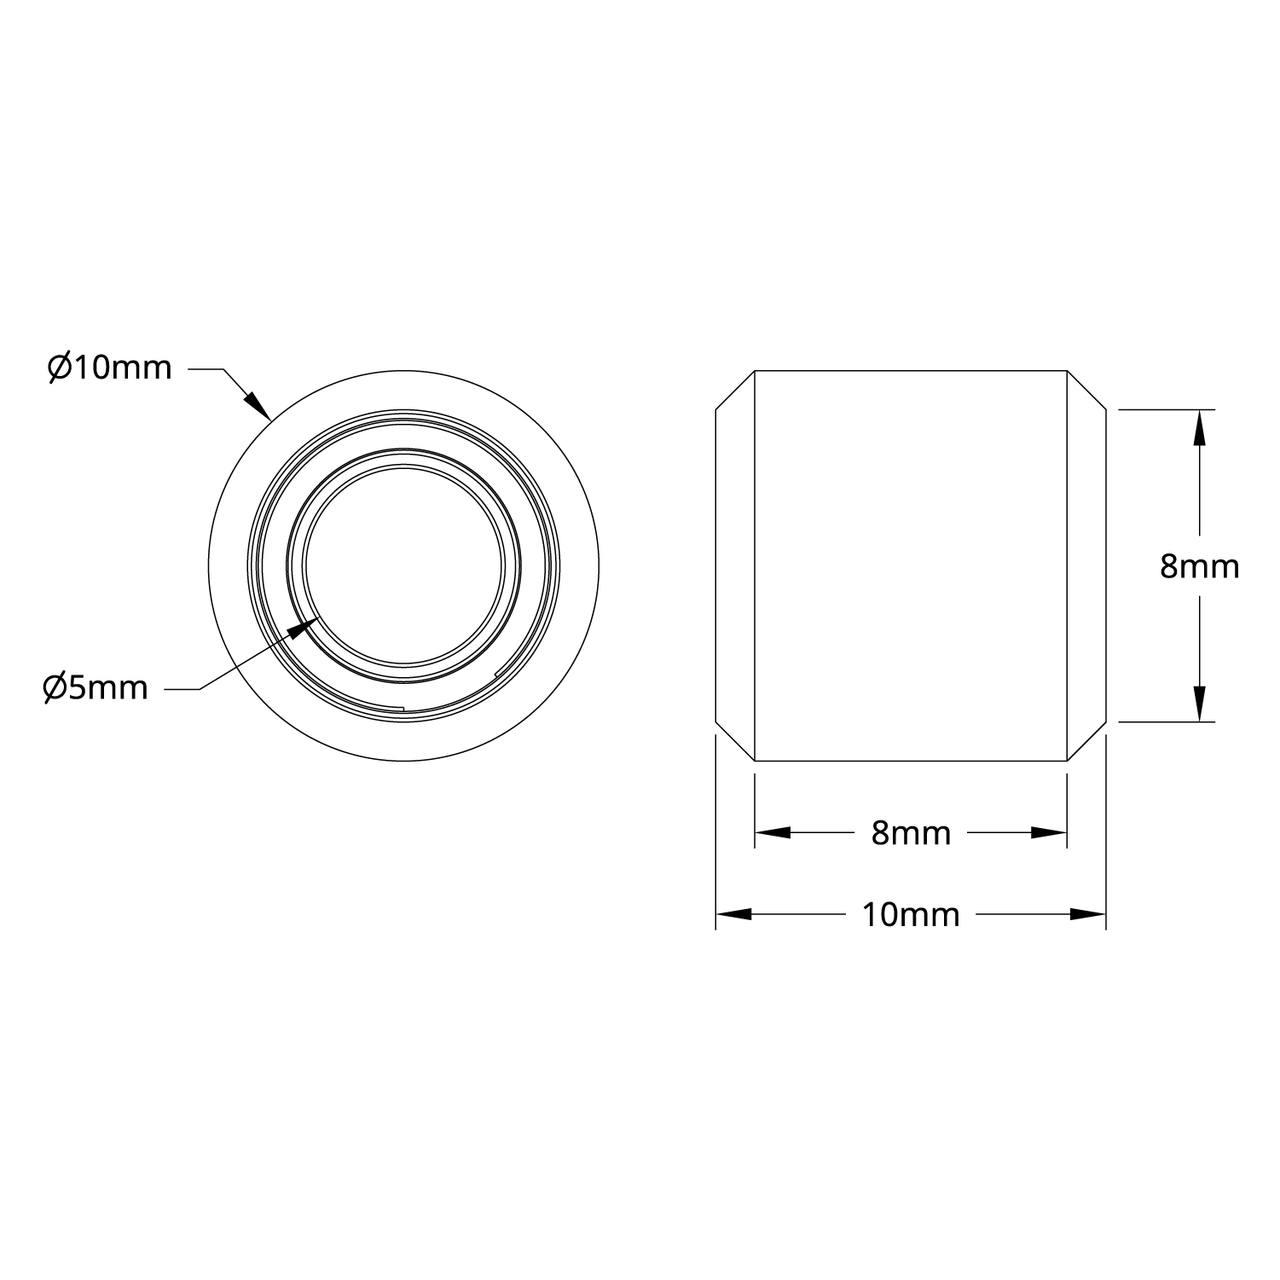 small resolution of  10mm 3600 0005 1010 schematic